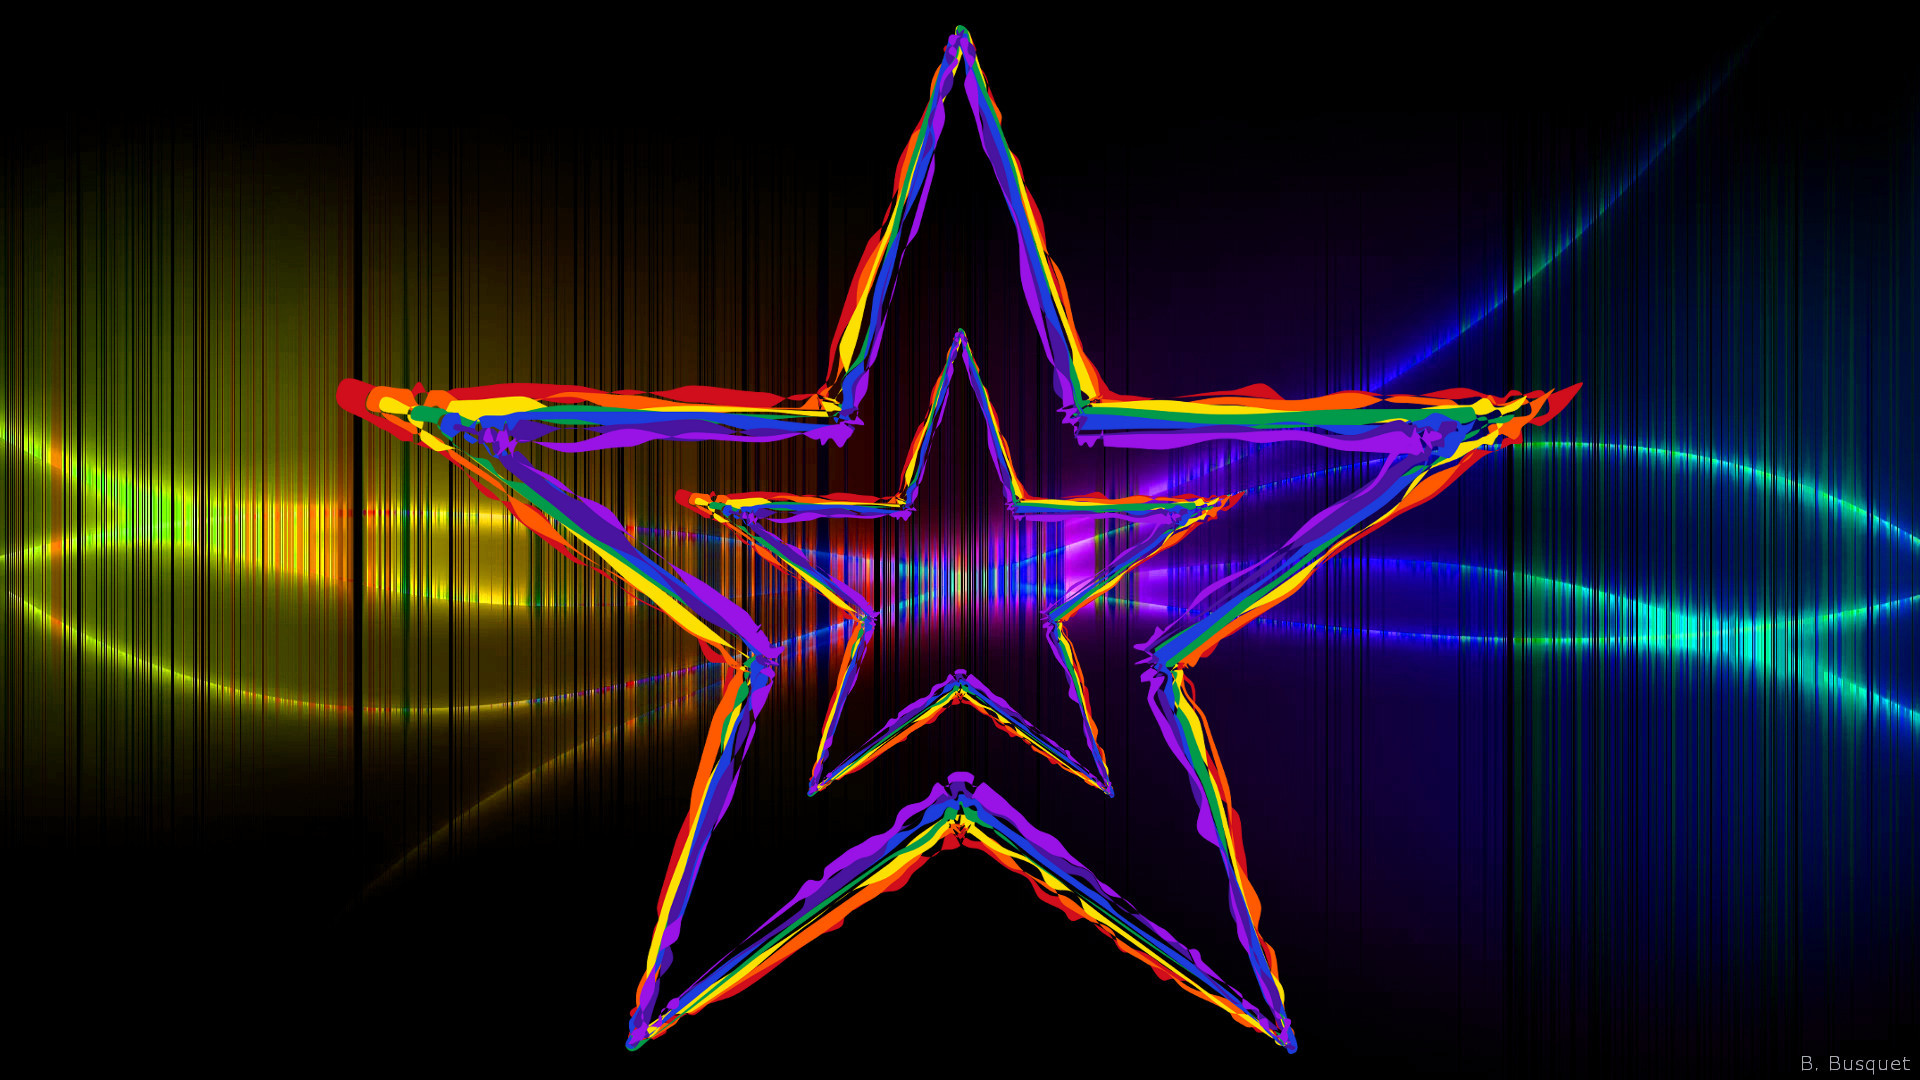 HD wallpaper with a small star in a big star.